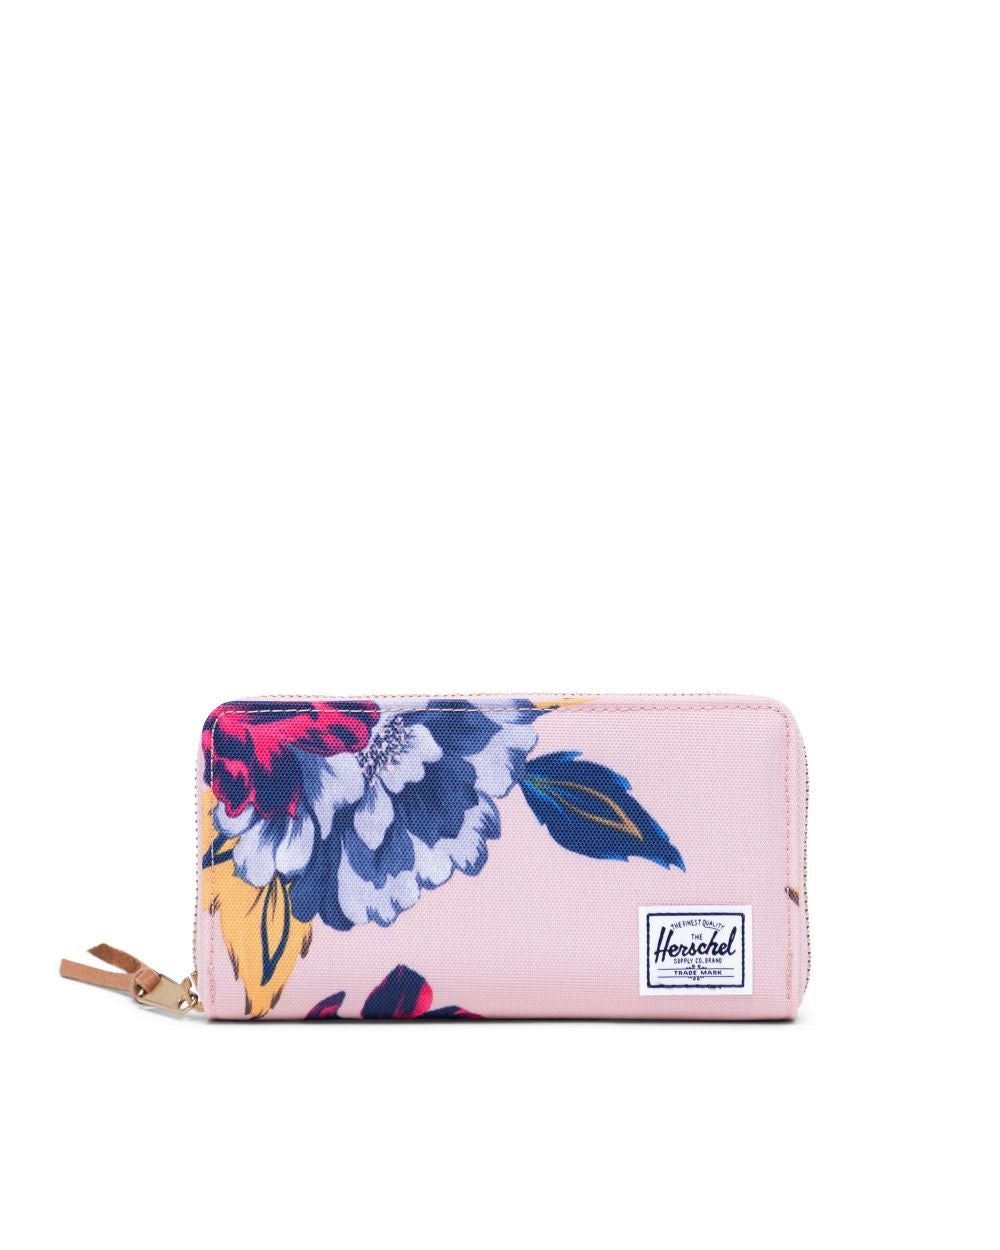 HERSCHEL - THOMAS WALLET IN WINTER FLORA